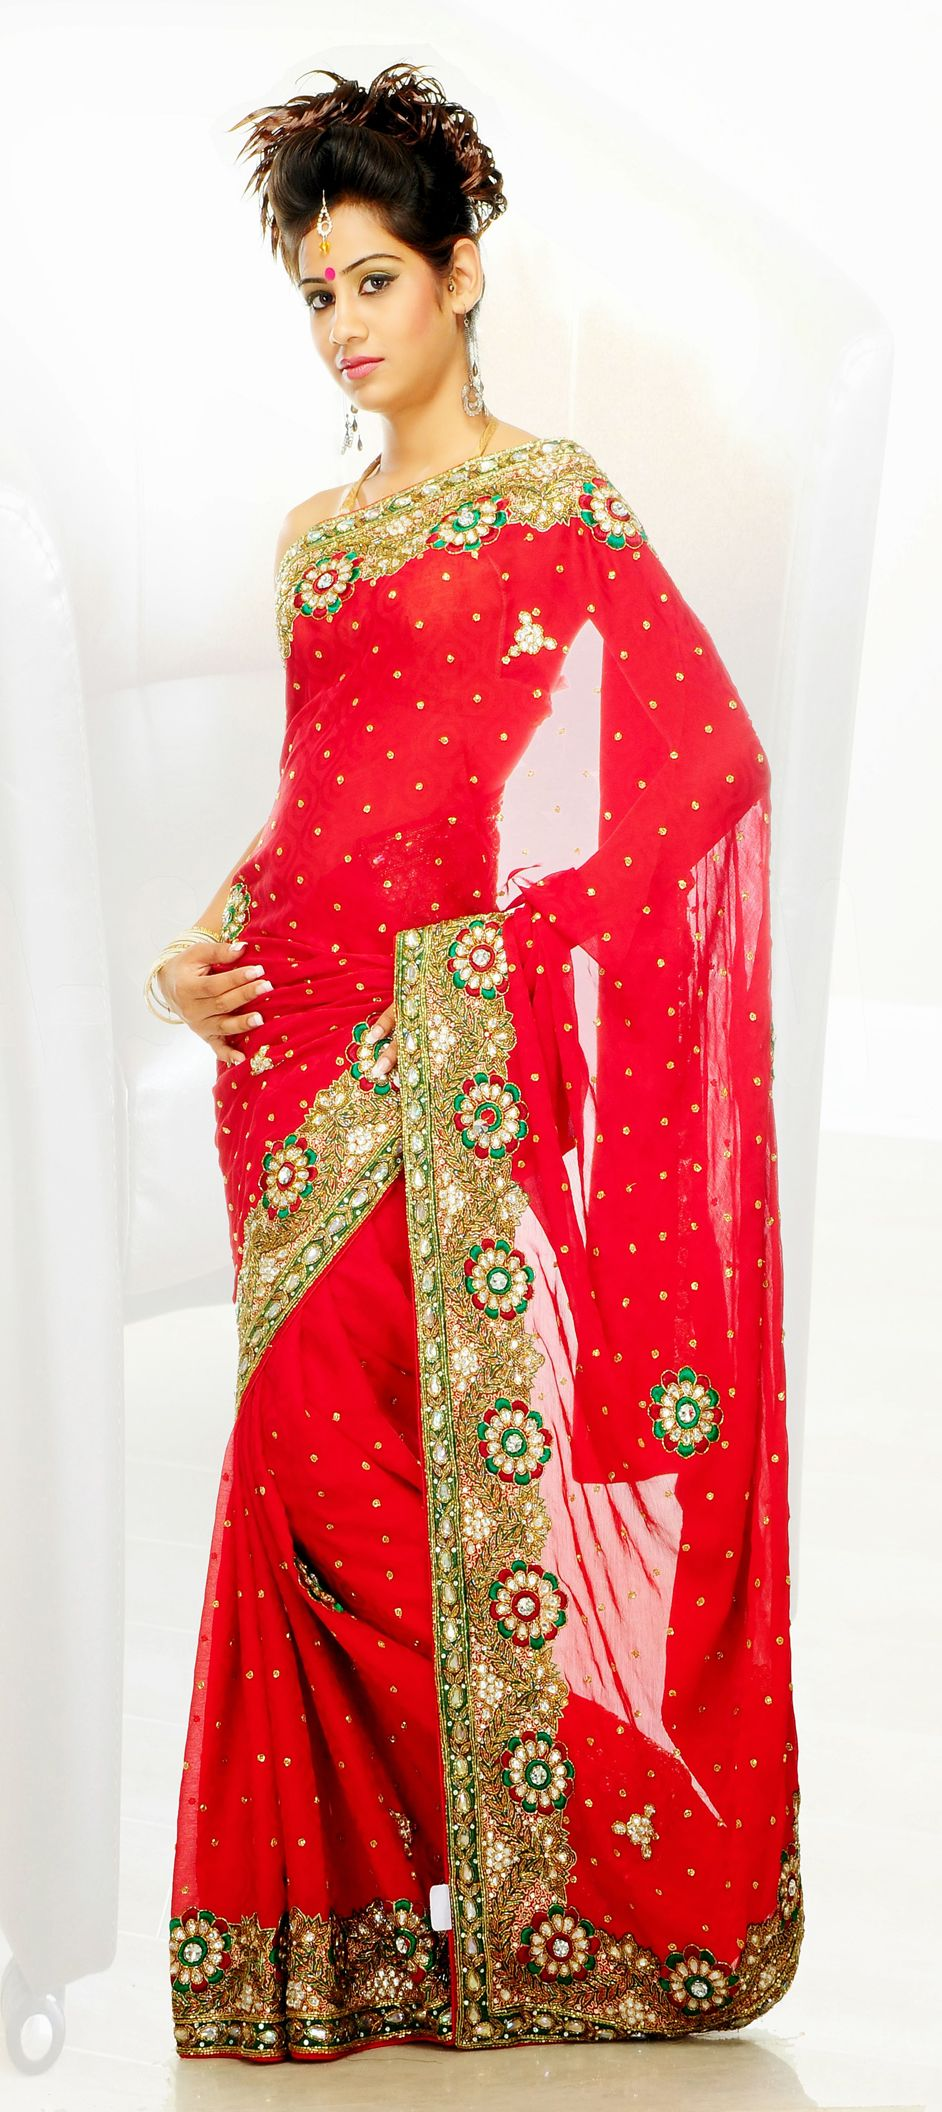 122056: Red and Maroon color family Saree with matching unstitched ...